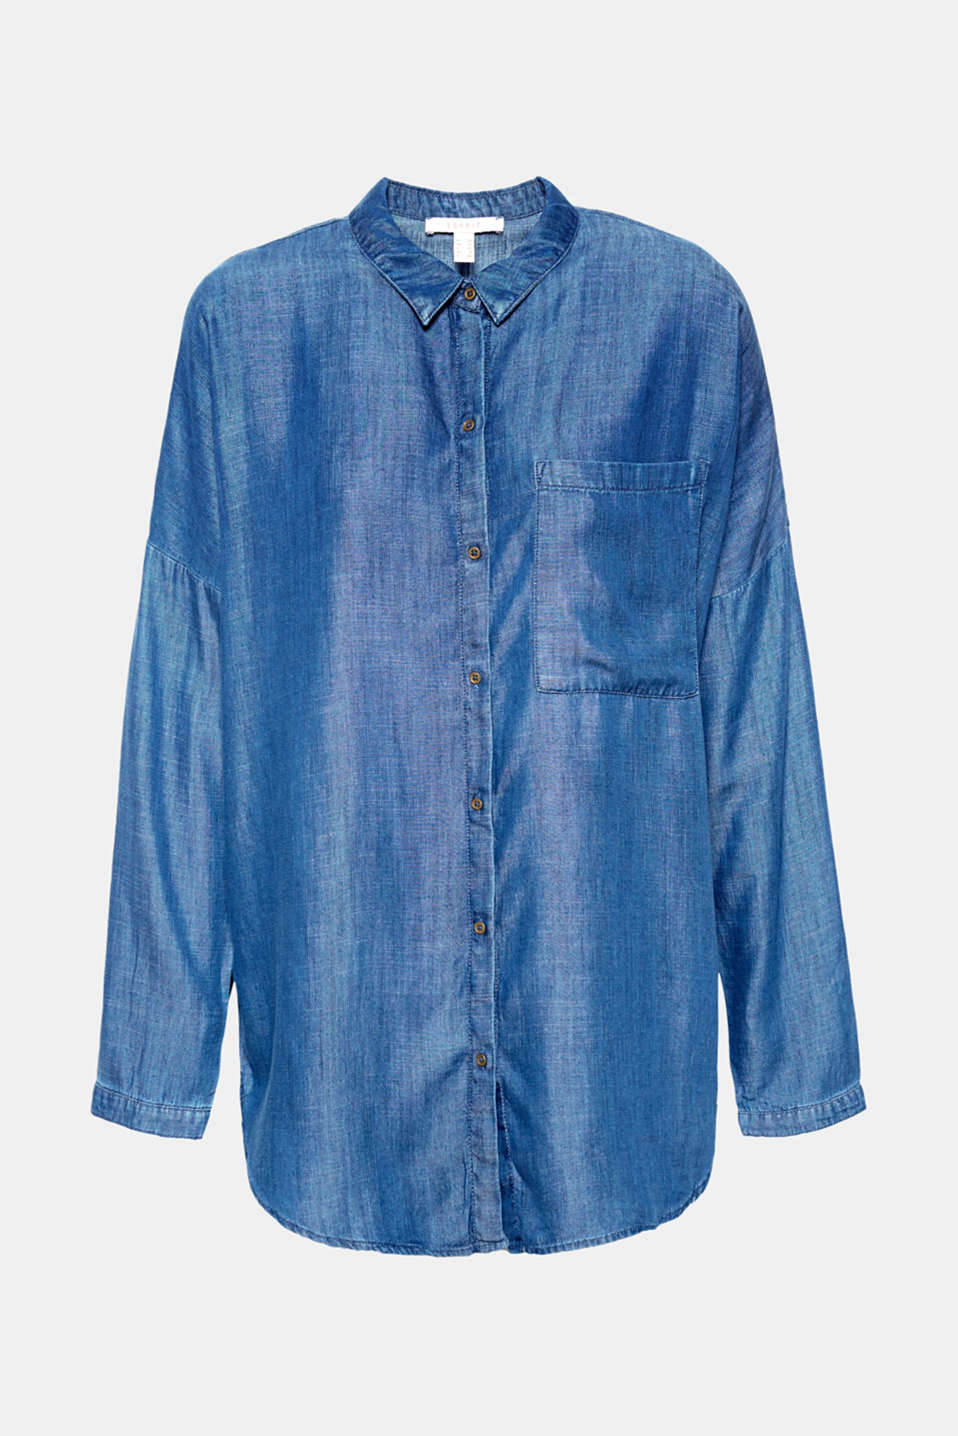 The soft material and casual cut make this lyocell shirt in a denim look a real feel-good piece!